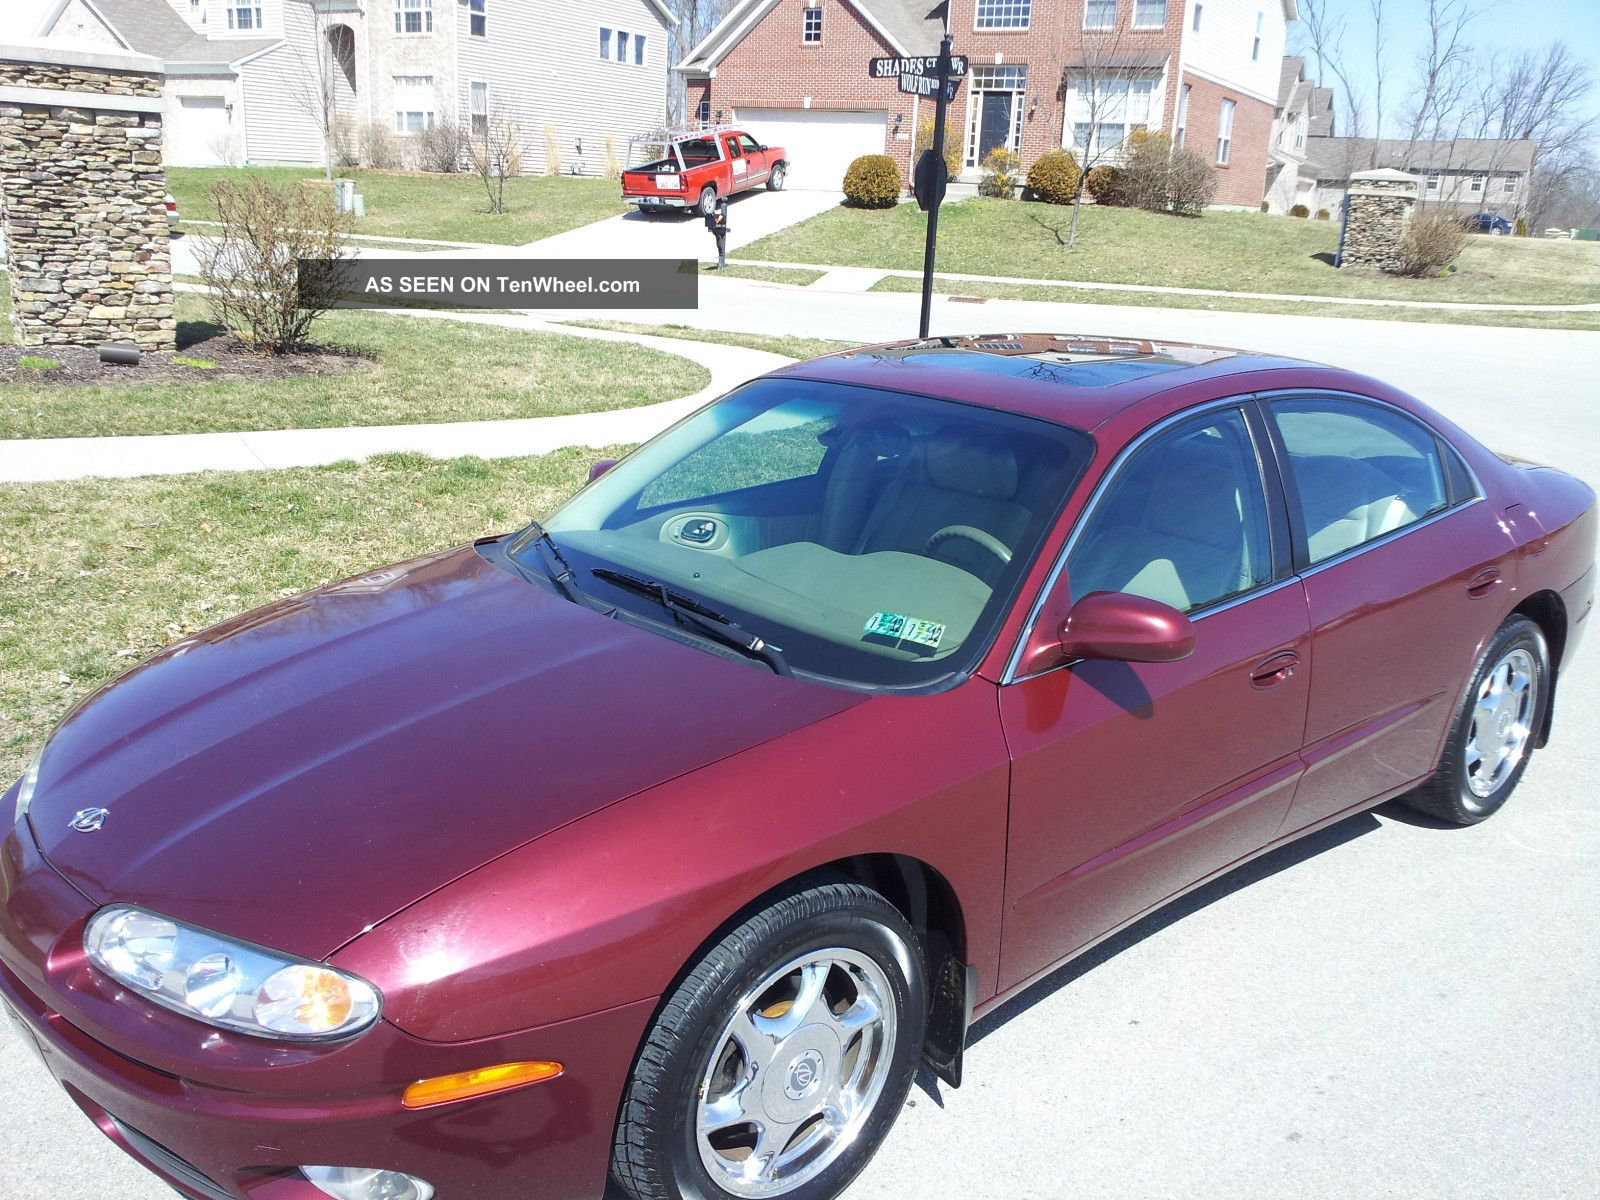 2001 Oldsmobile Aurora 4.  0l Burgundy / Tan.  Remote Starter. Aurora photo